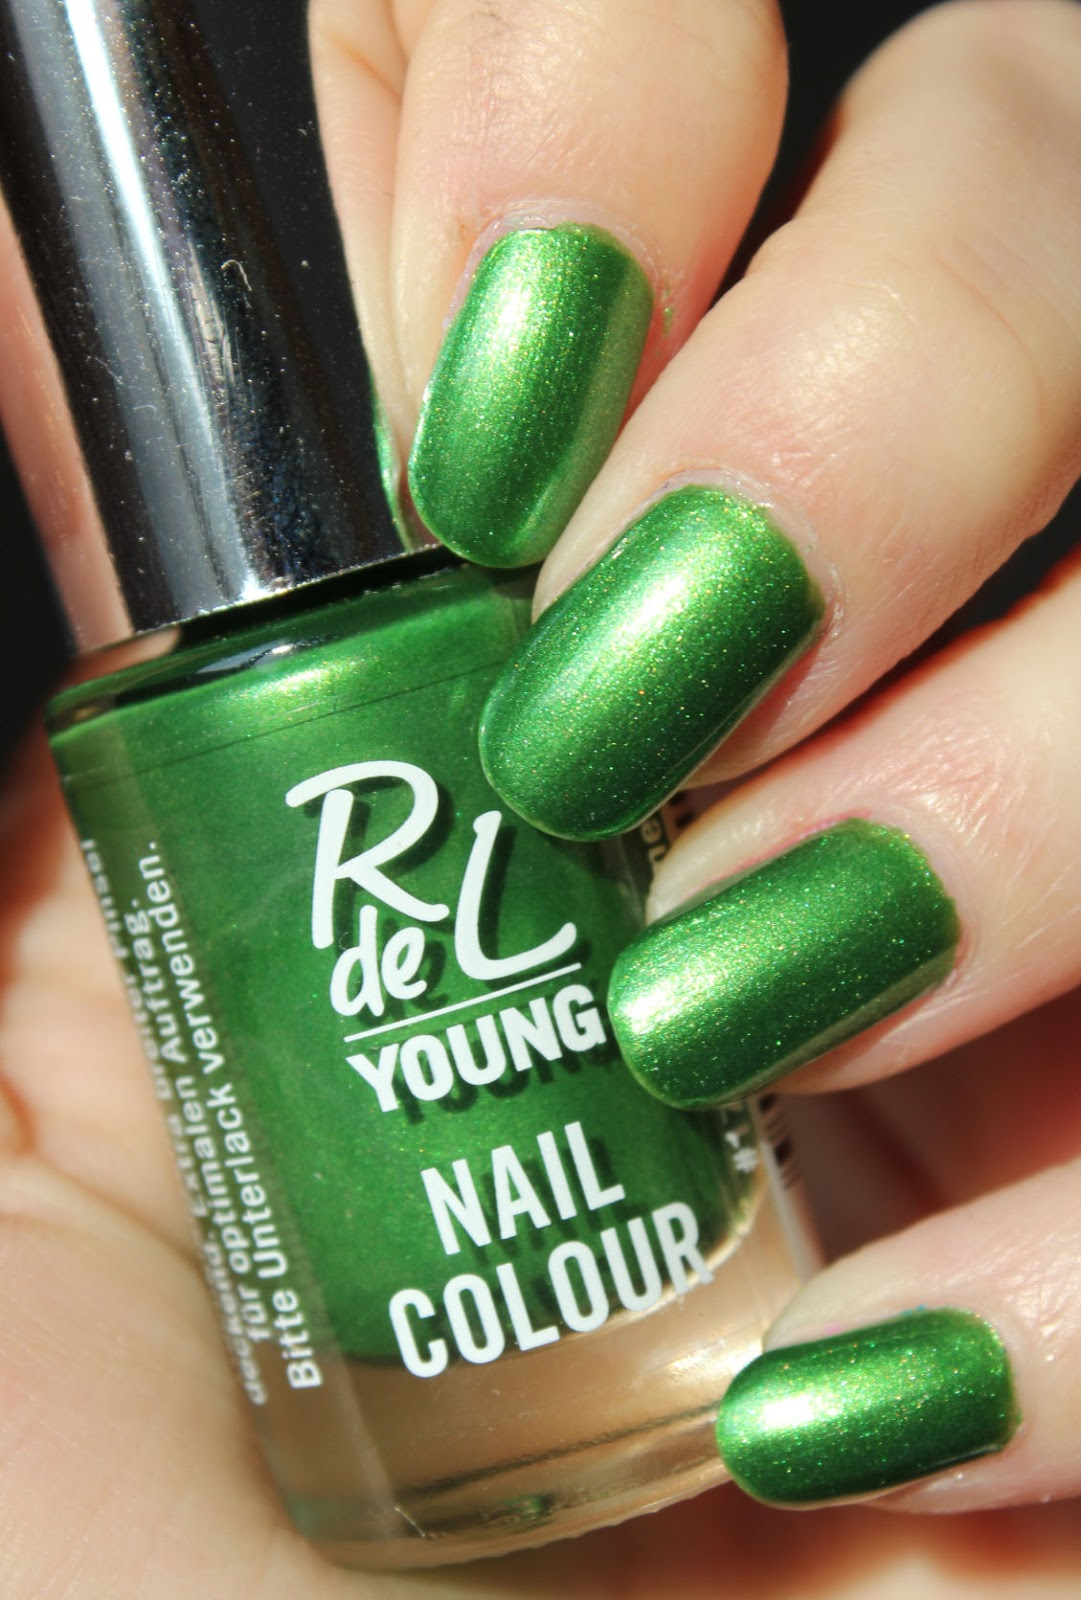 http://lacquediction.blogspot.de/2014/05/rival-de-loop-young-nail-colour-17.html